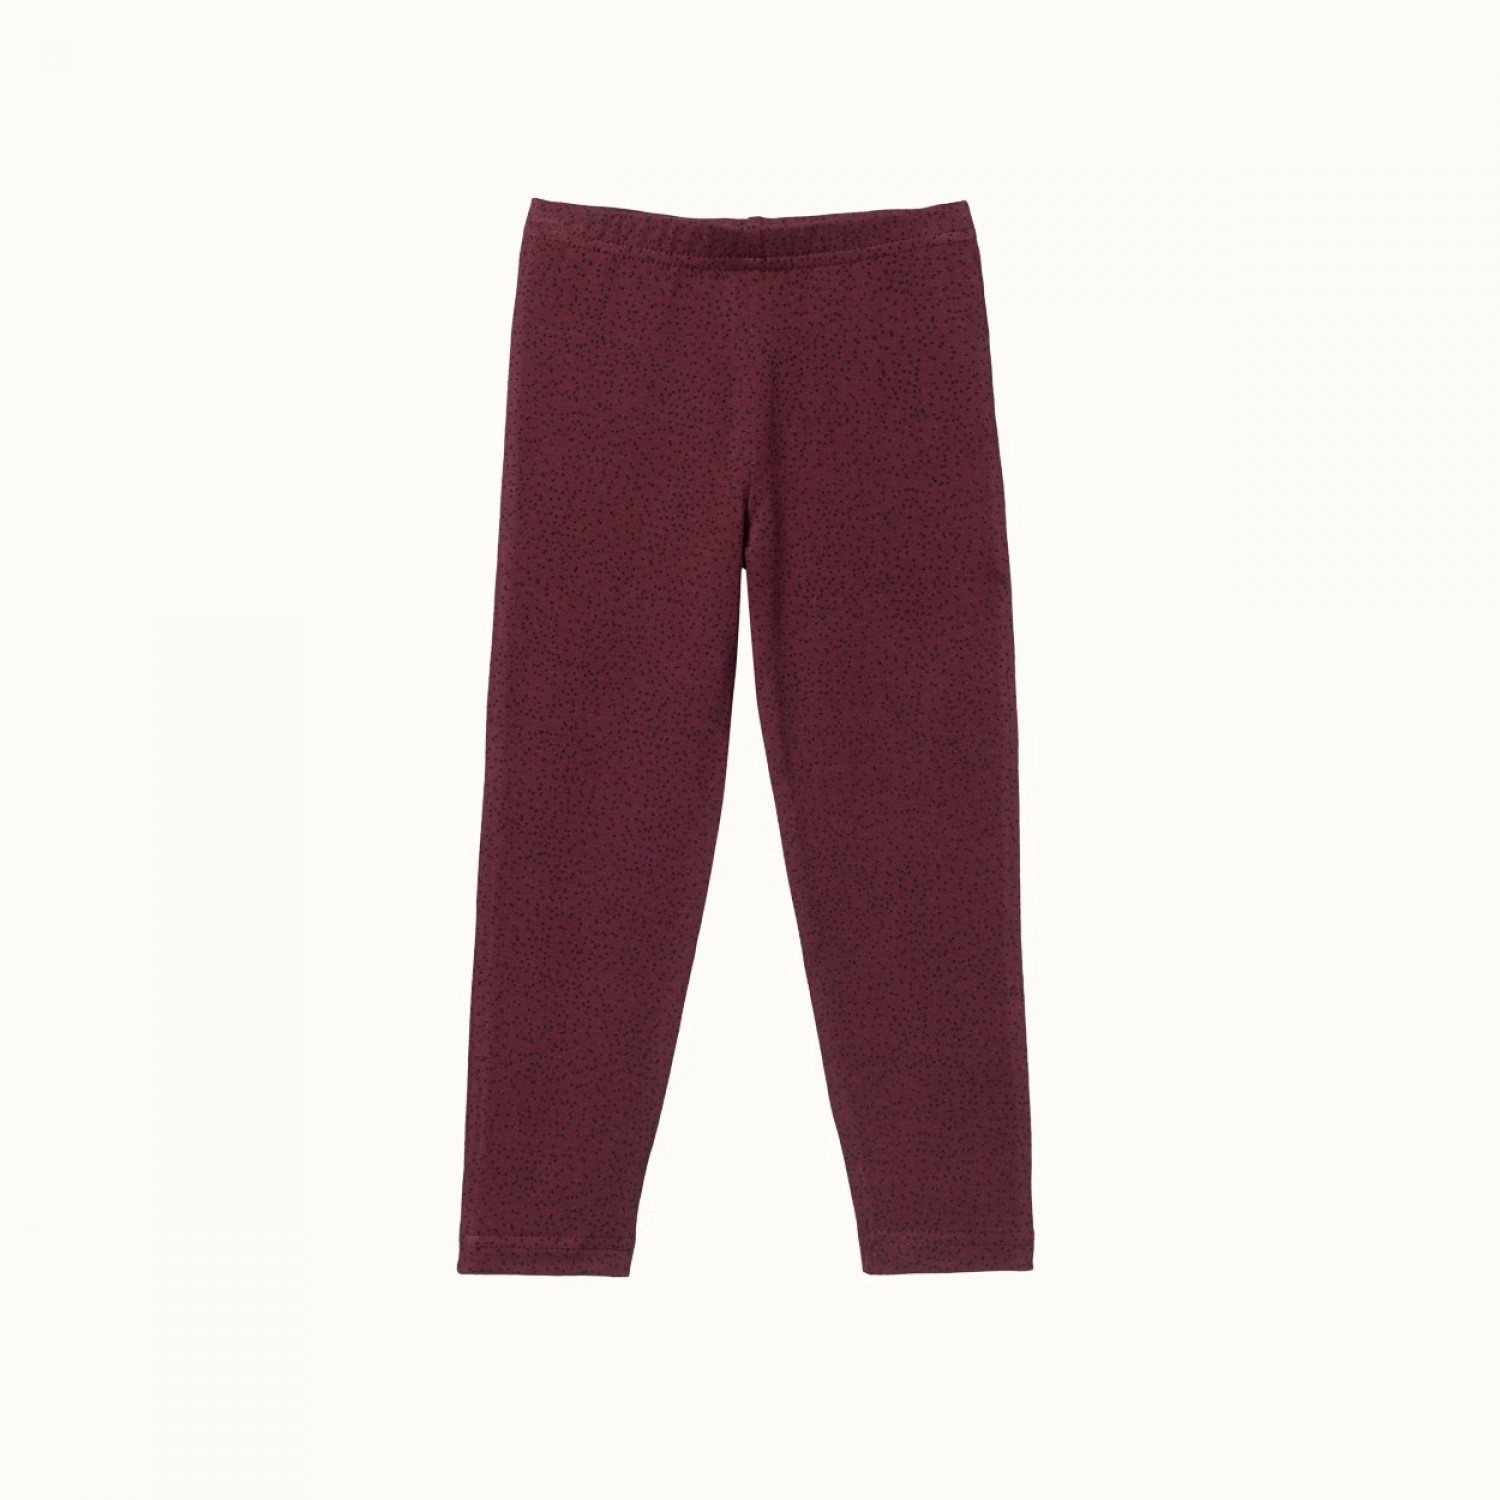 LEGGINGS - SMALL SPECKLE MULBERRY PRINT